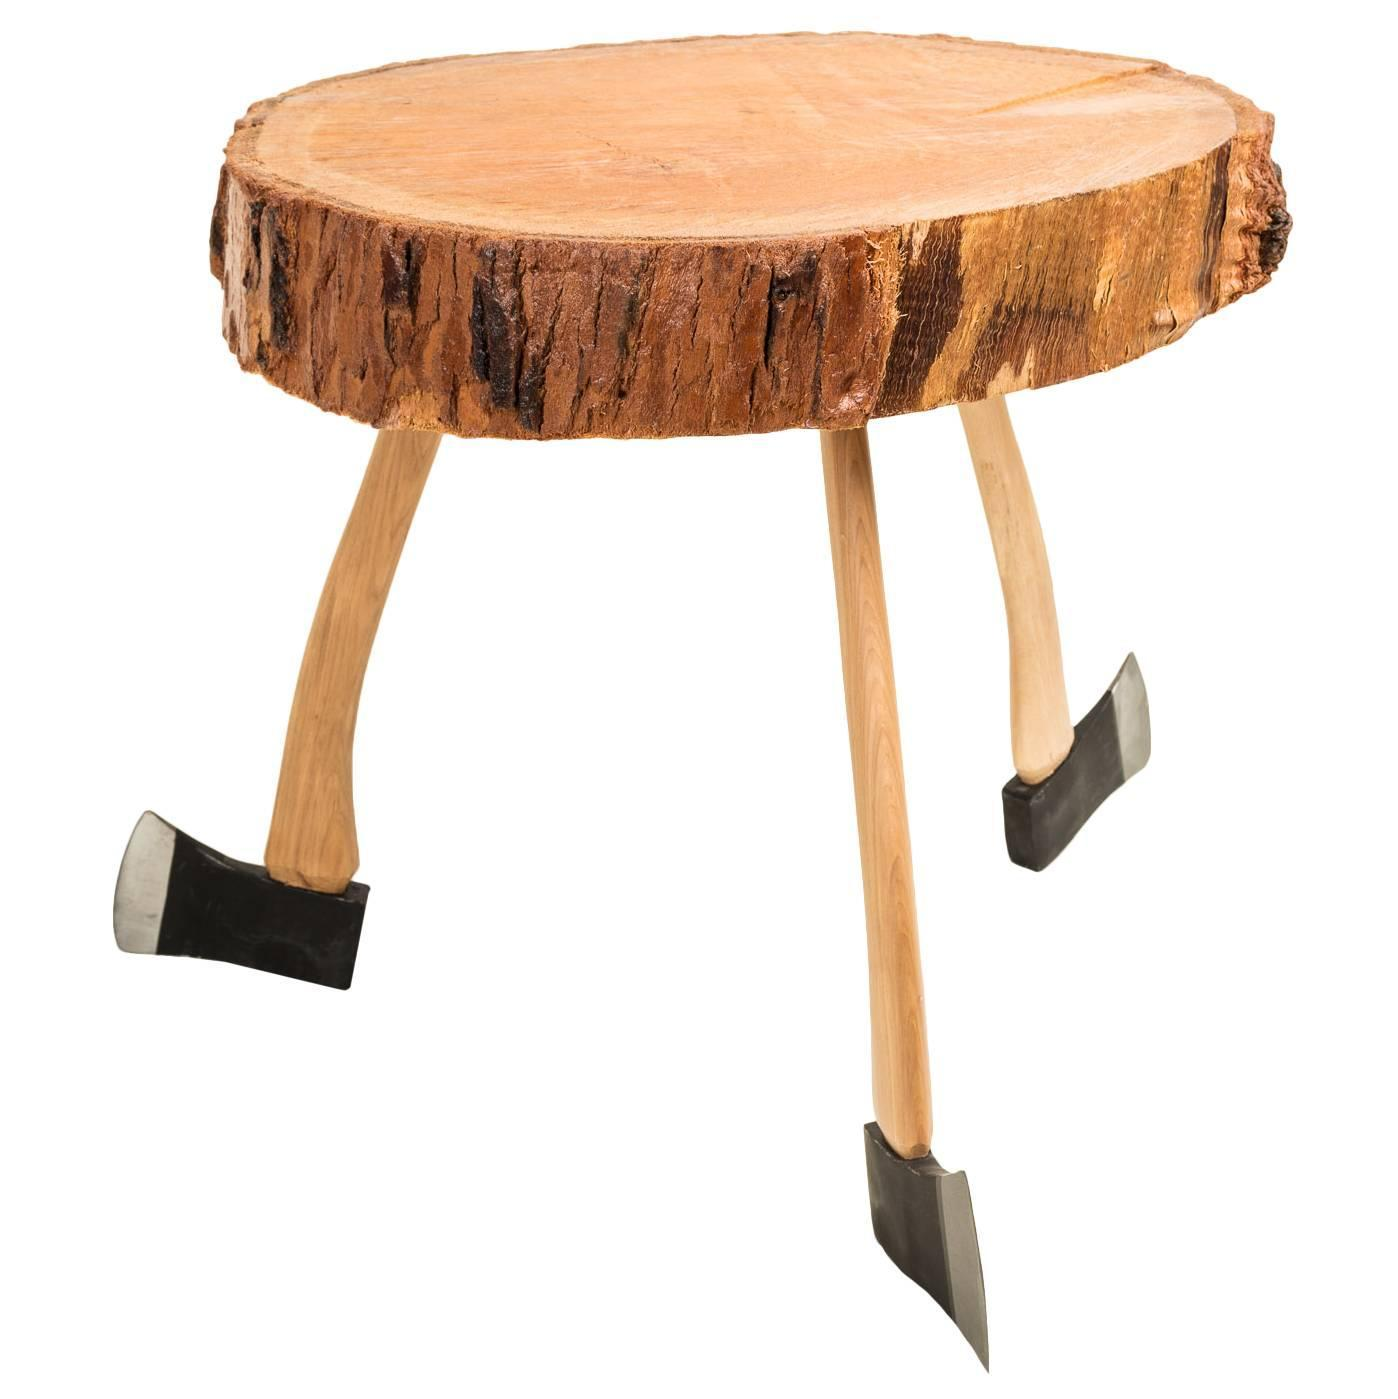 Axe handle base rustic pine coffee table for sale at 1stdibs for Pine coffee table